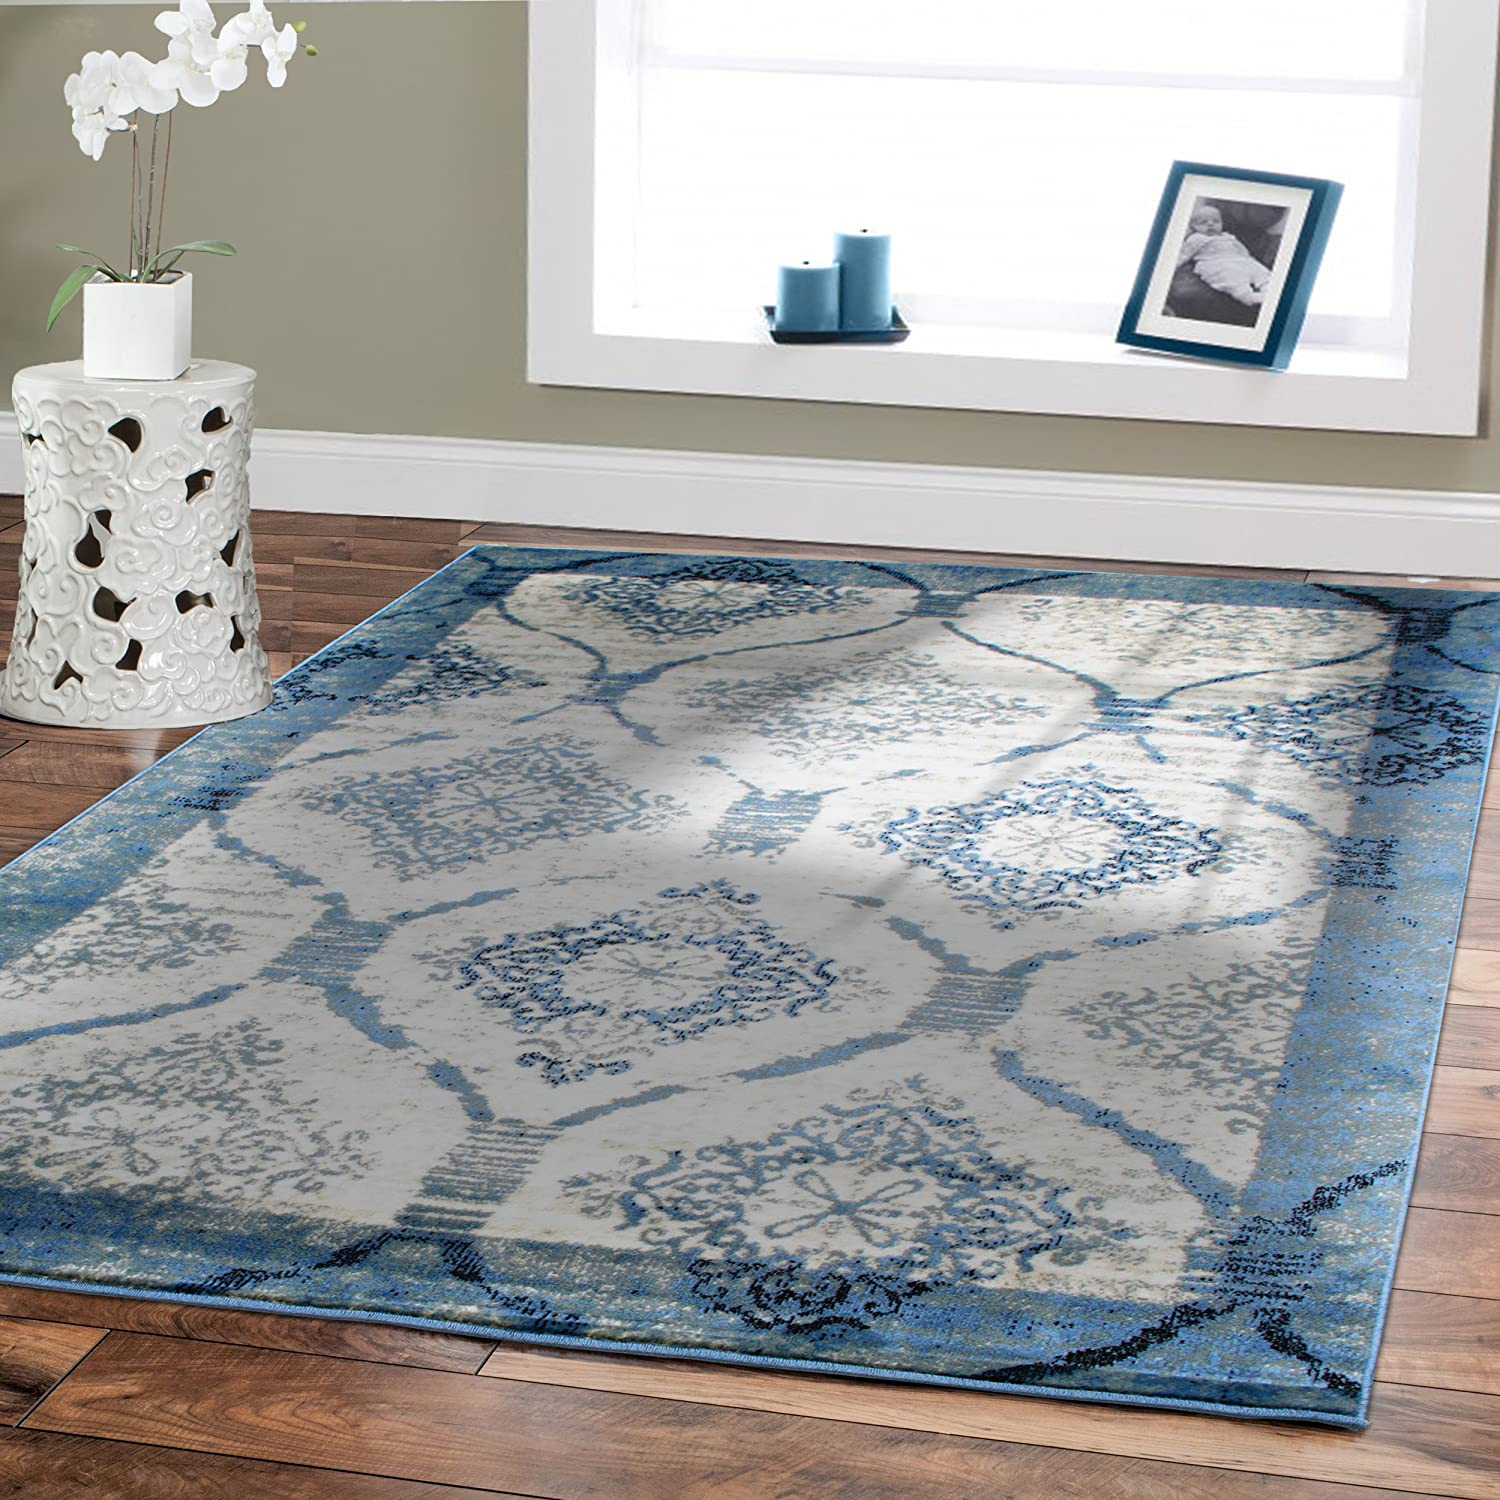 tips ideas rugs best living image decorate for area design room